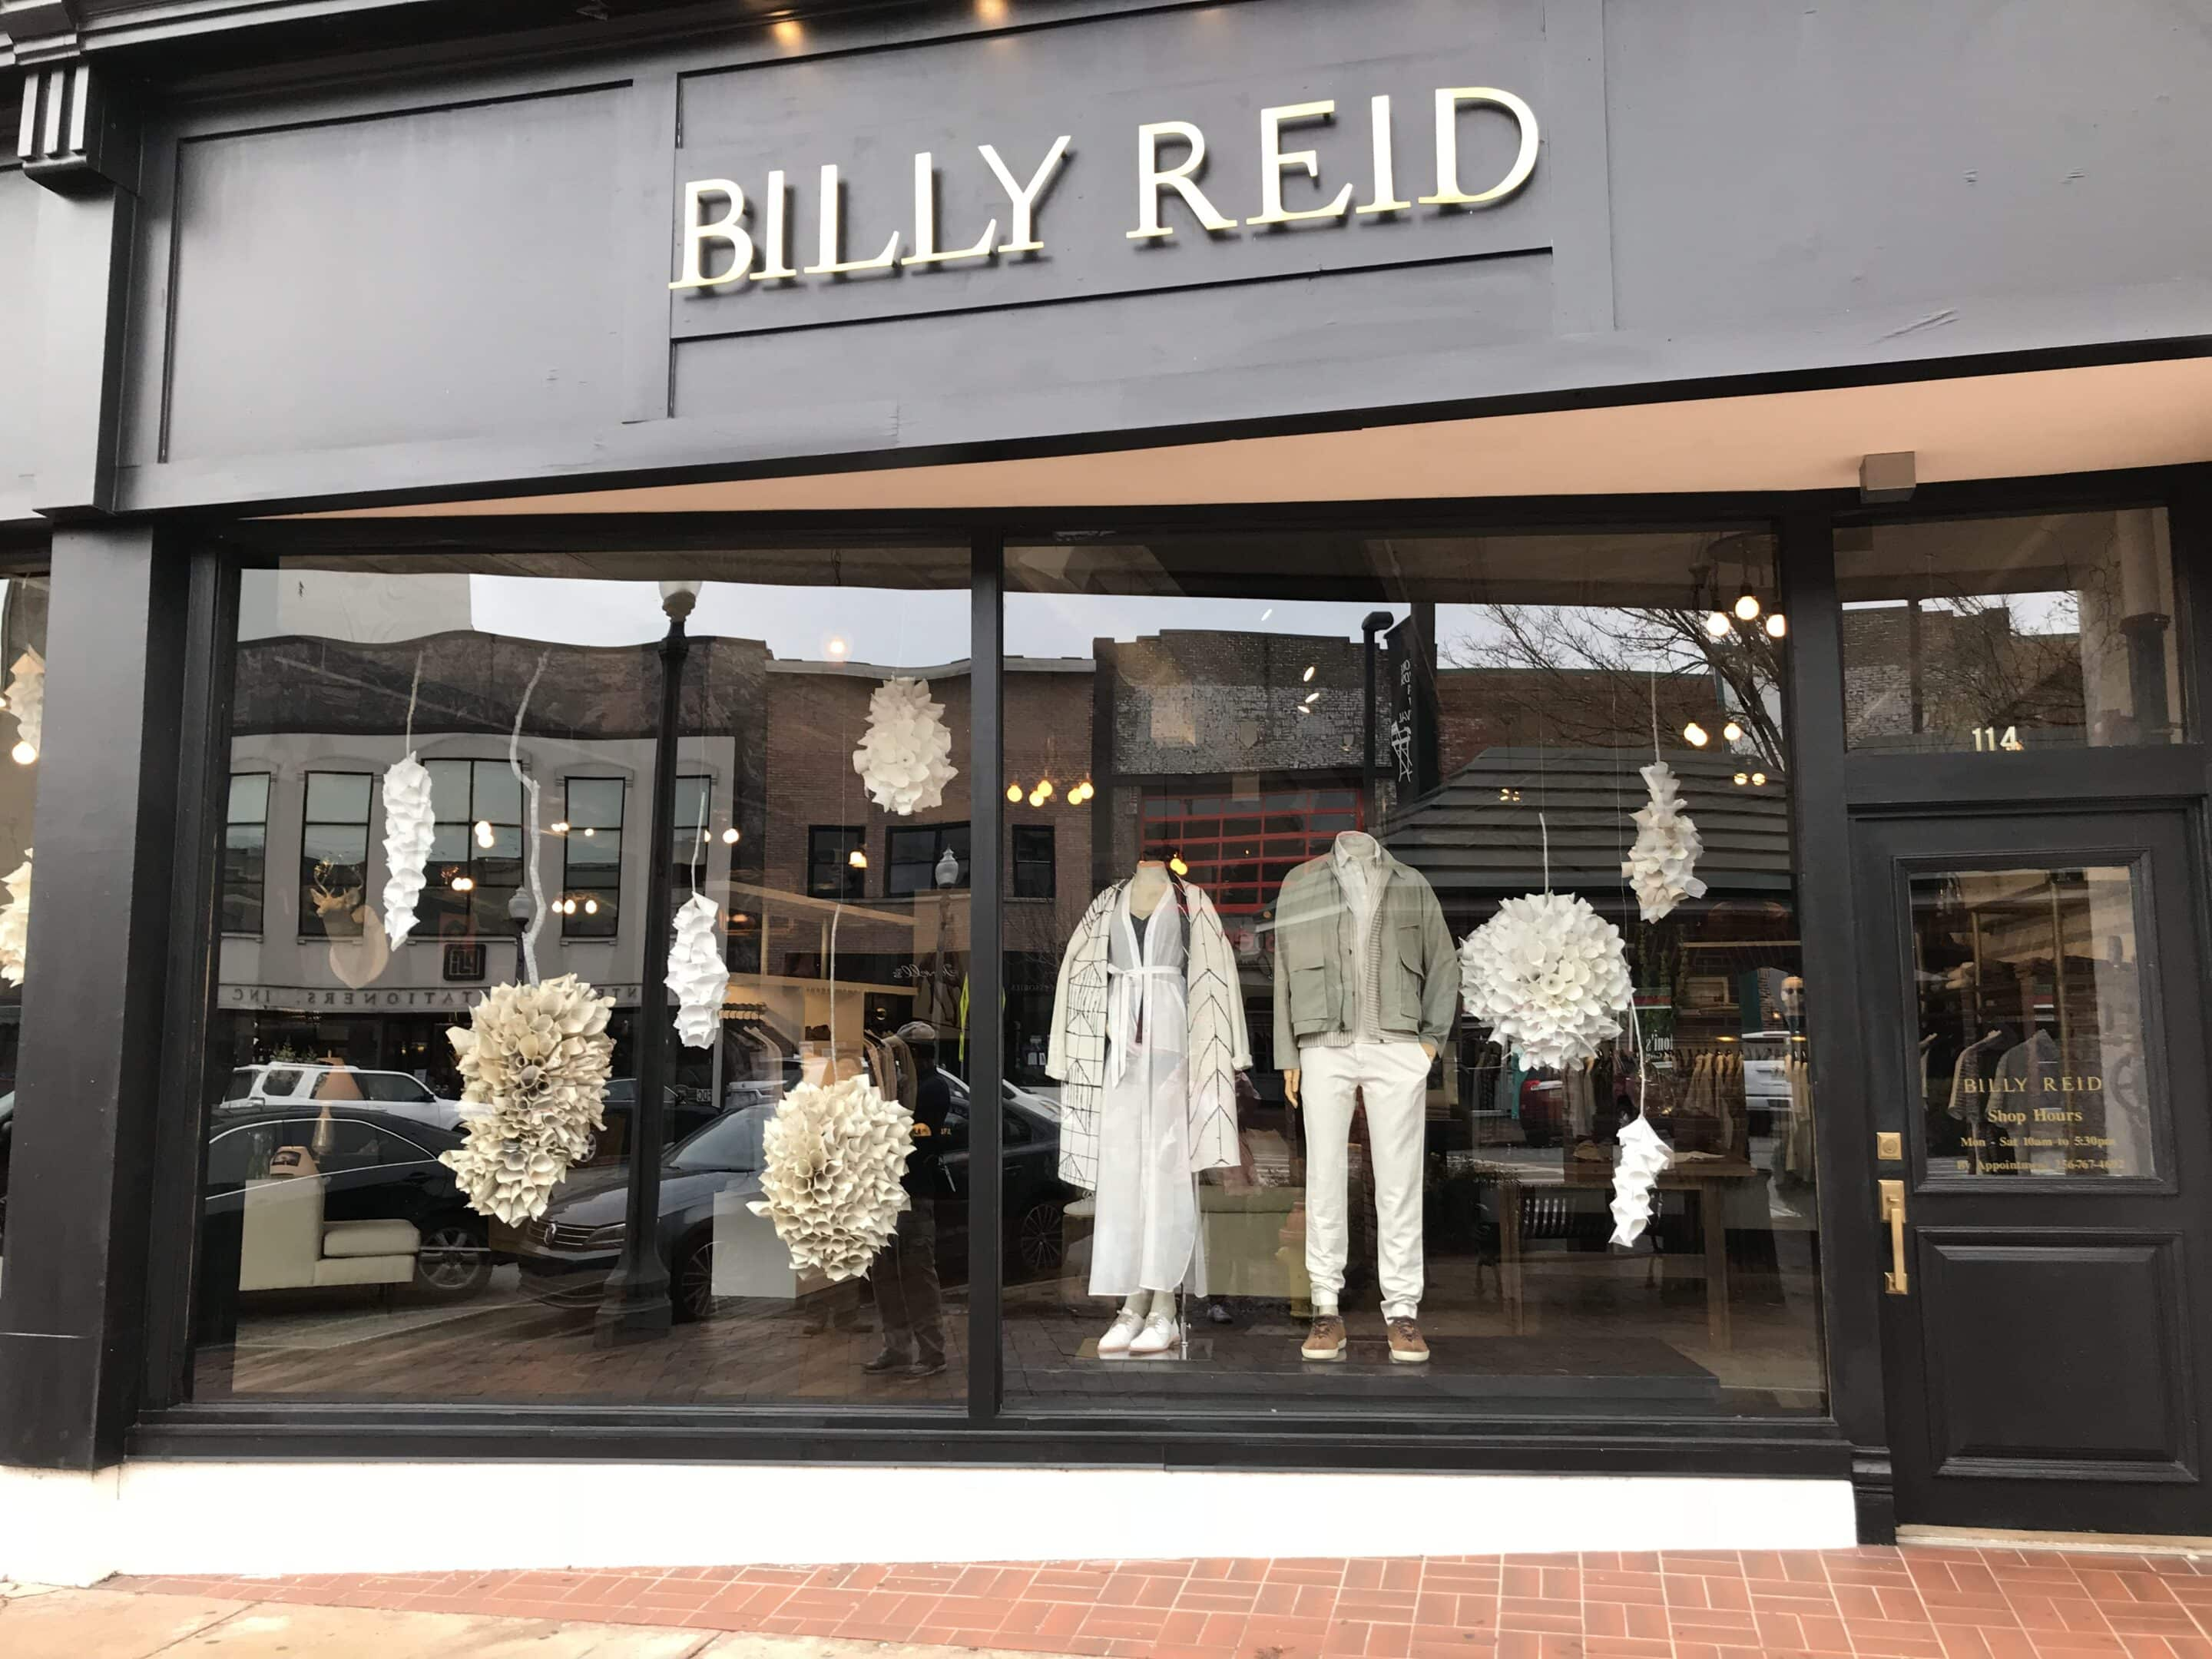 Billy Reid's shop in Florence, Alabama